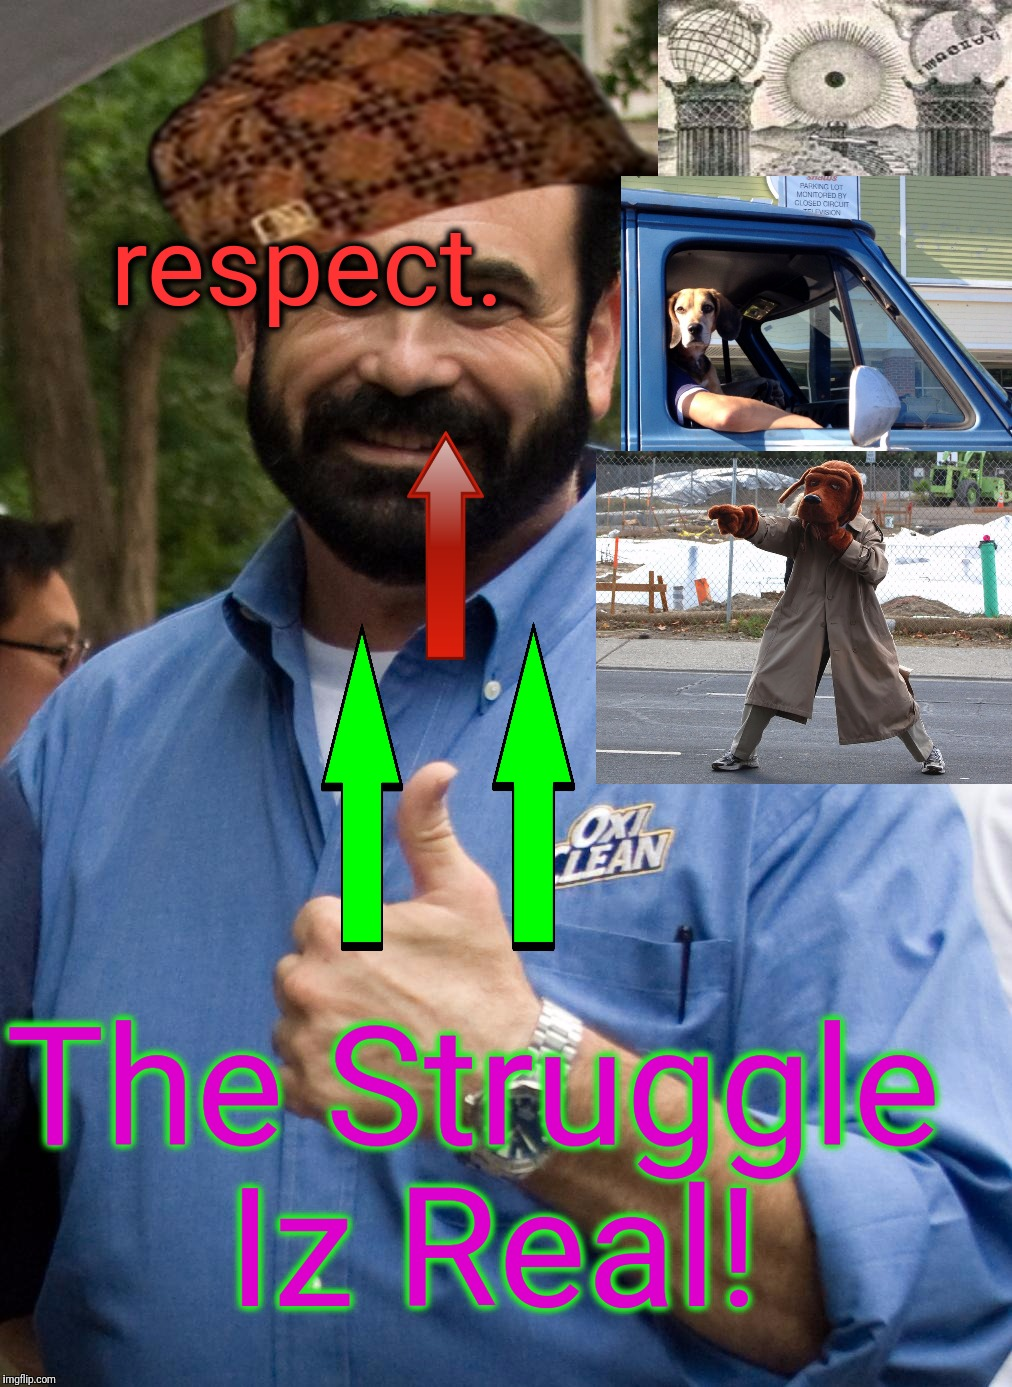 respect. The Struggle Iz Real! | made w/ Imgflip meme maker